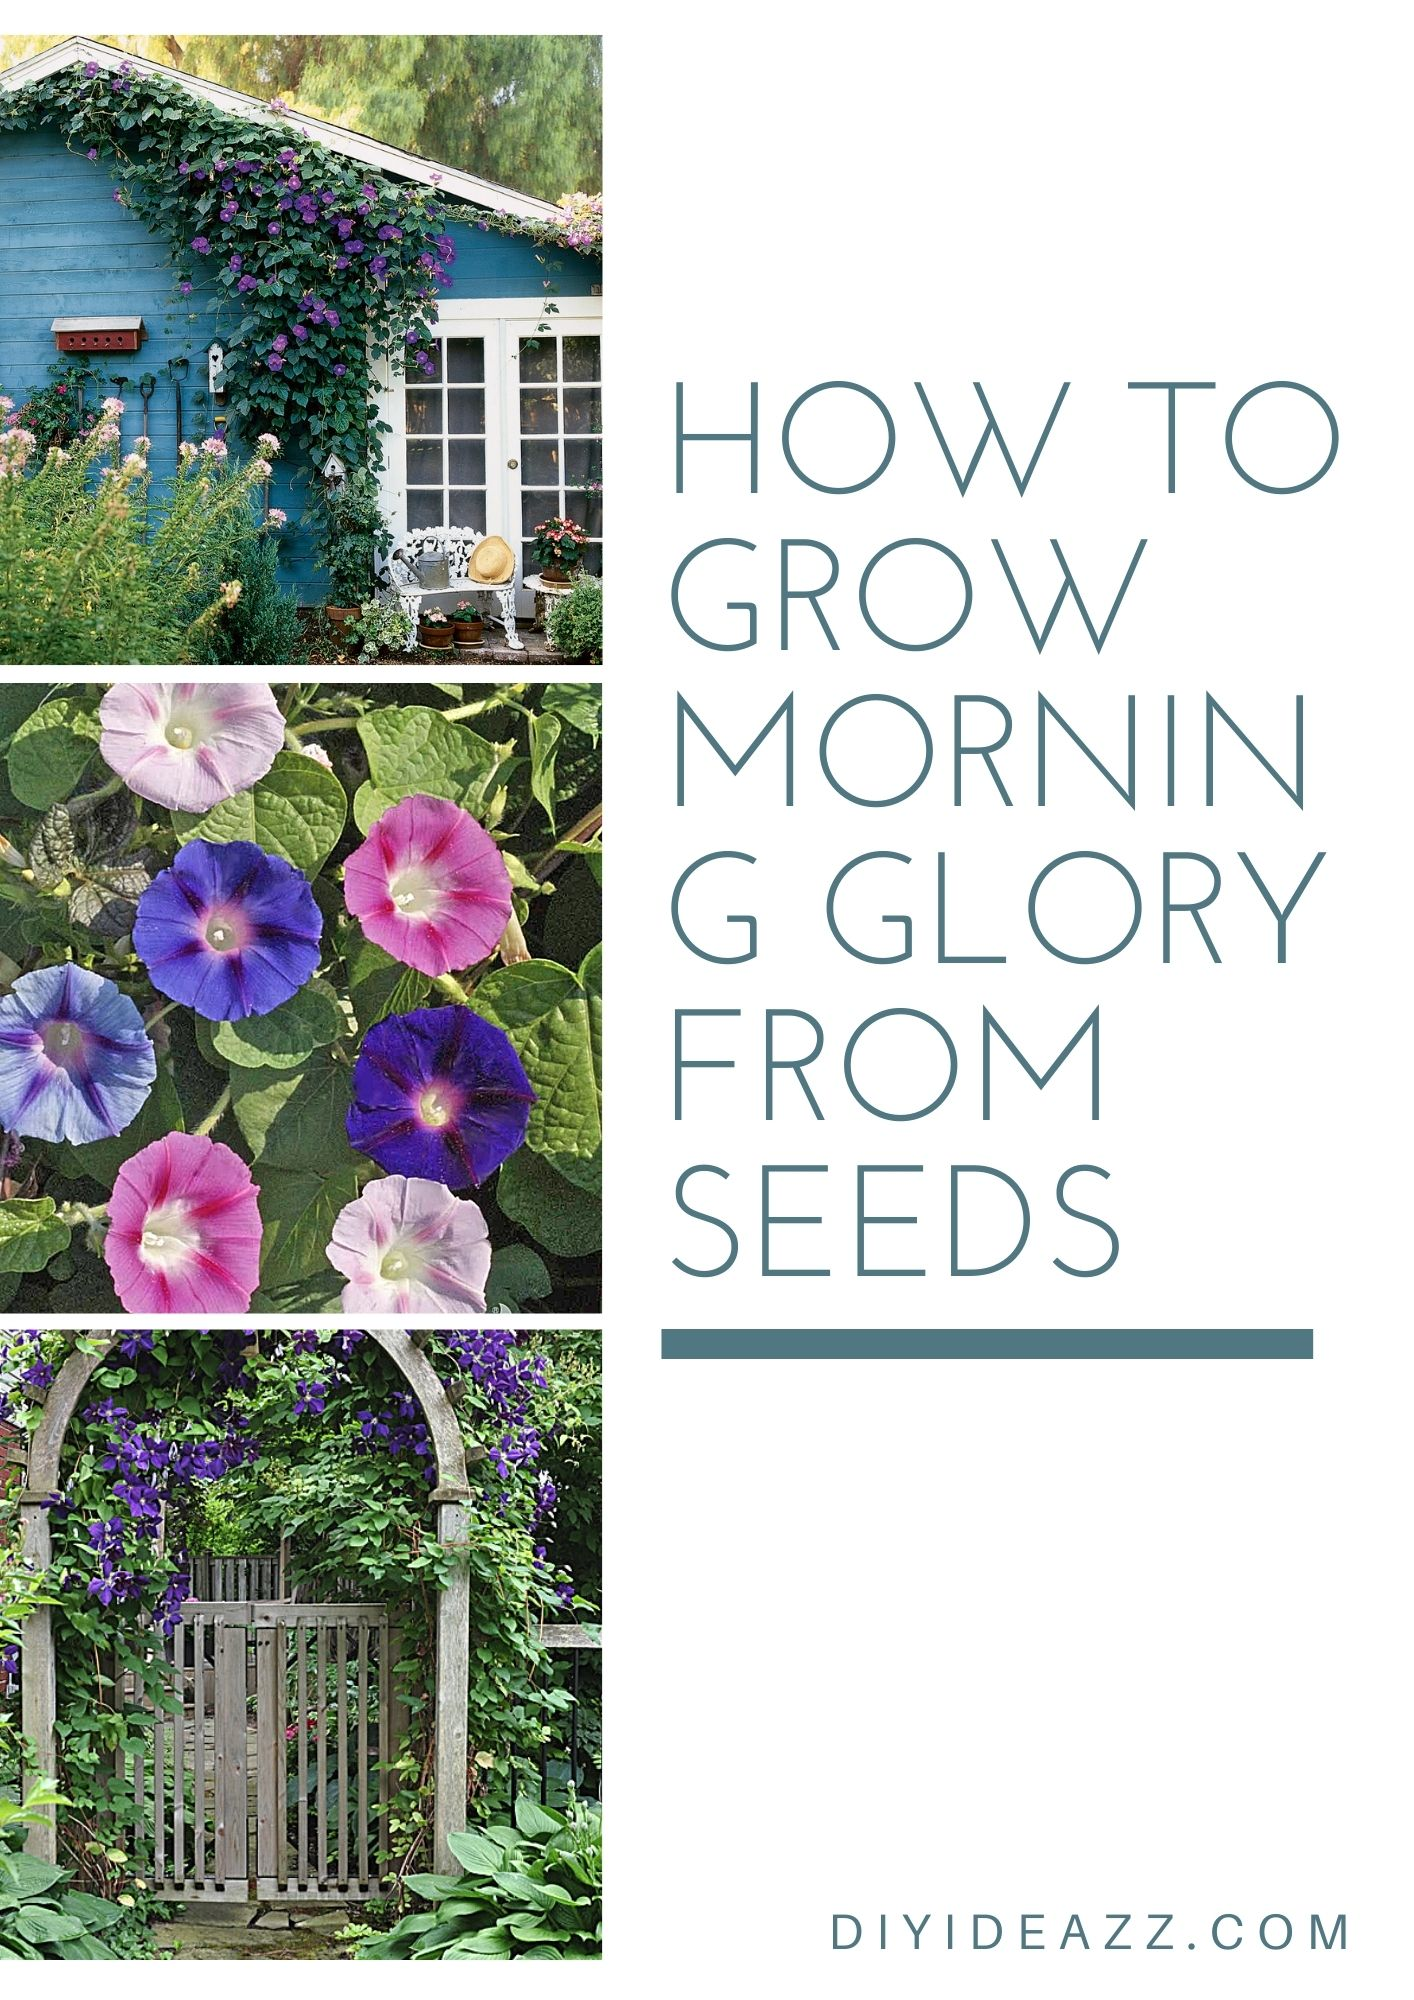 How To Grow Morning Glory From Seeds   Propagate Morning glory successfully